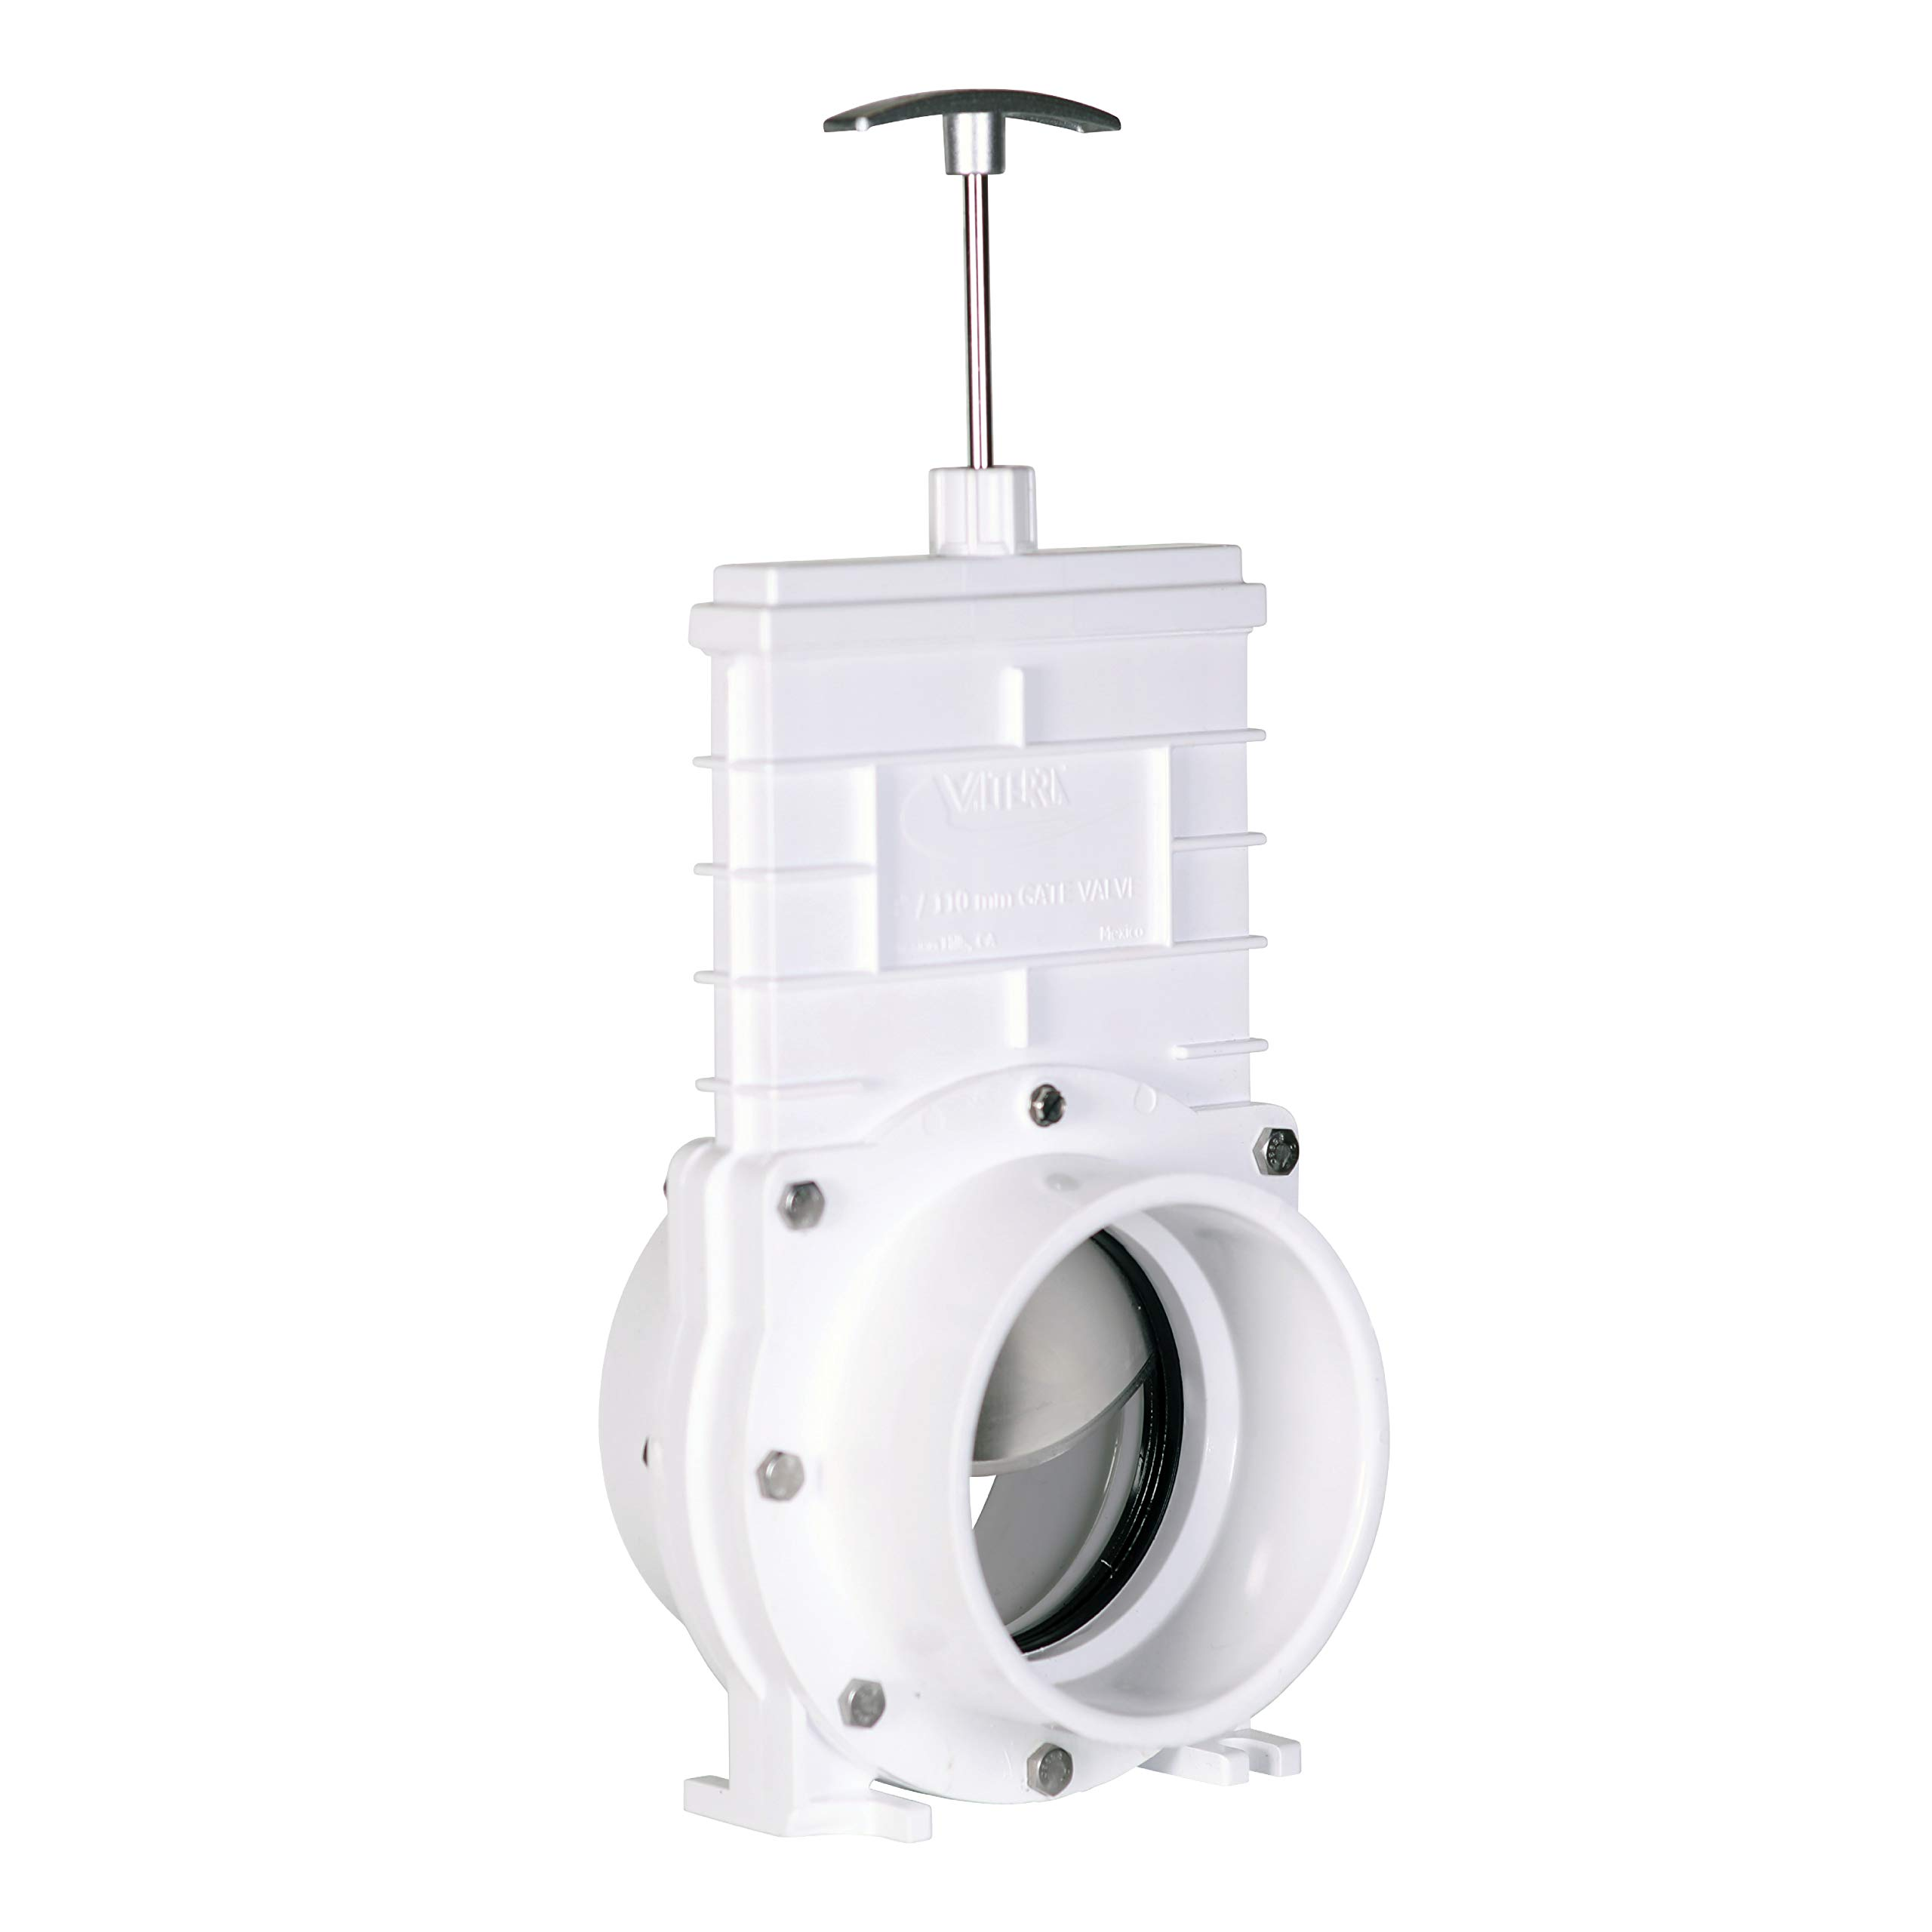 Valterra PVC Gate Valve for Irrigation, Landscape, and More - 4-Inch Slip x Slip Connection by Valterra